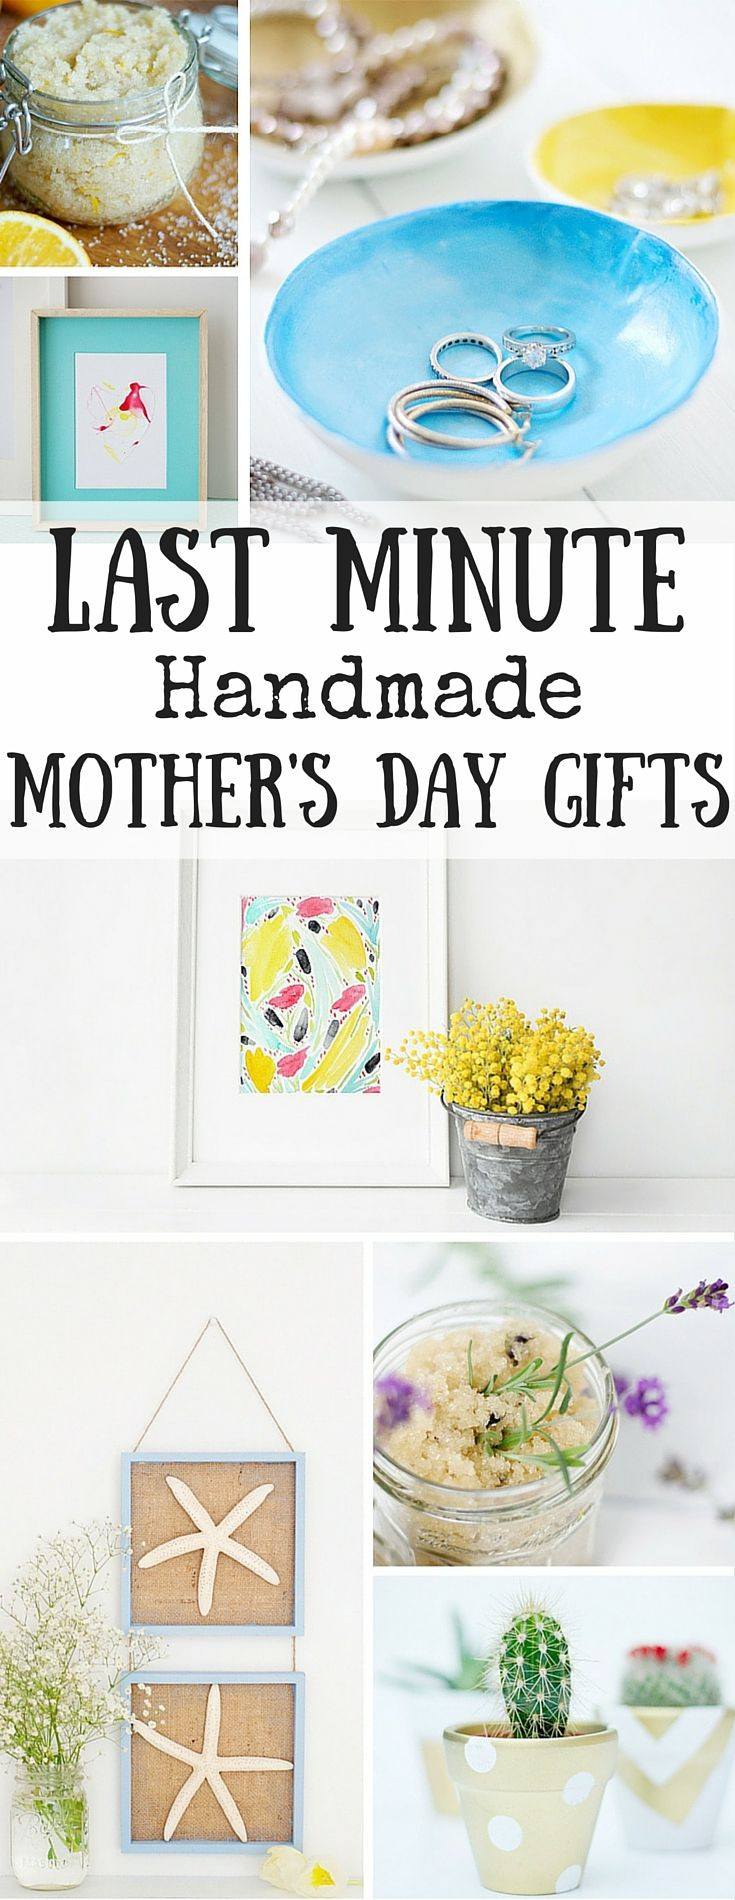 Last Minute Birthday Gifts For Mom  Last Minute Handmade Mothers Day Gifts